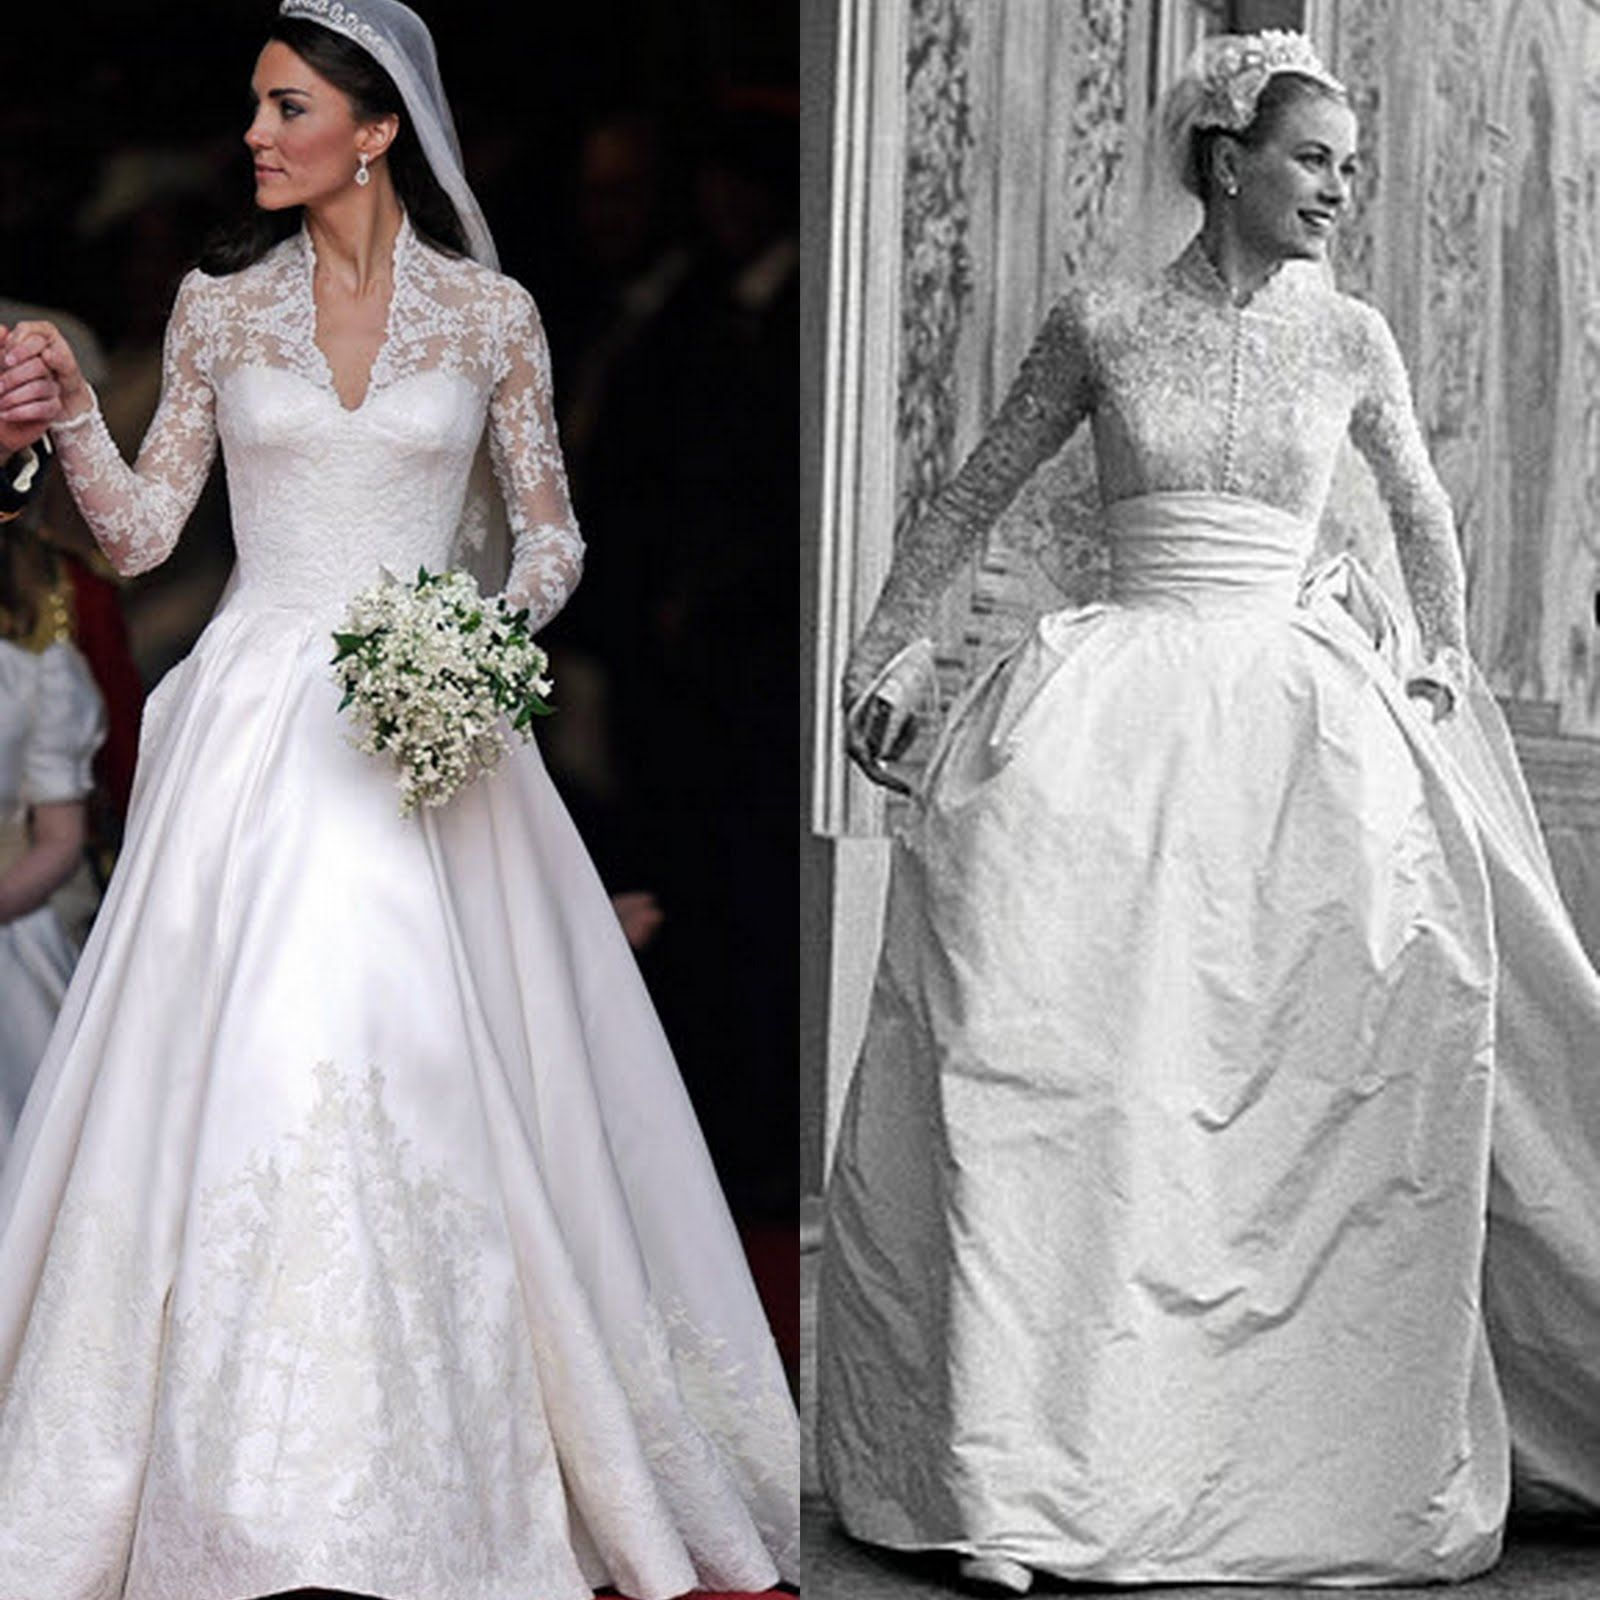 Was Kate Middleton\'s Dress Inspired by Grace Kelly? | Princess ...